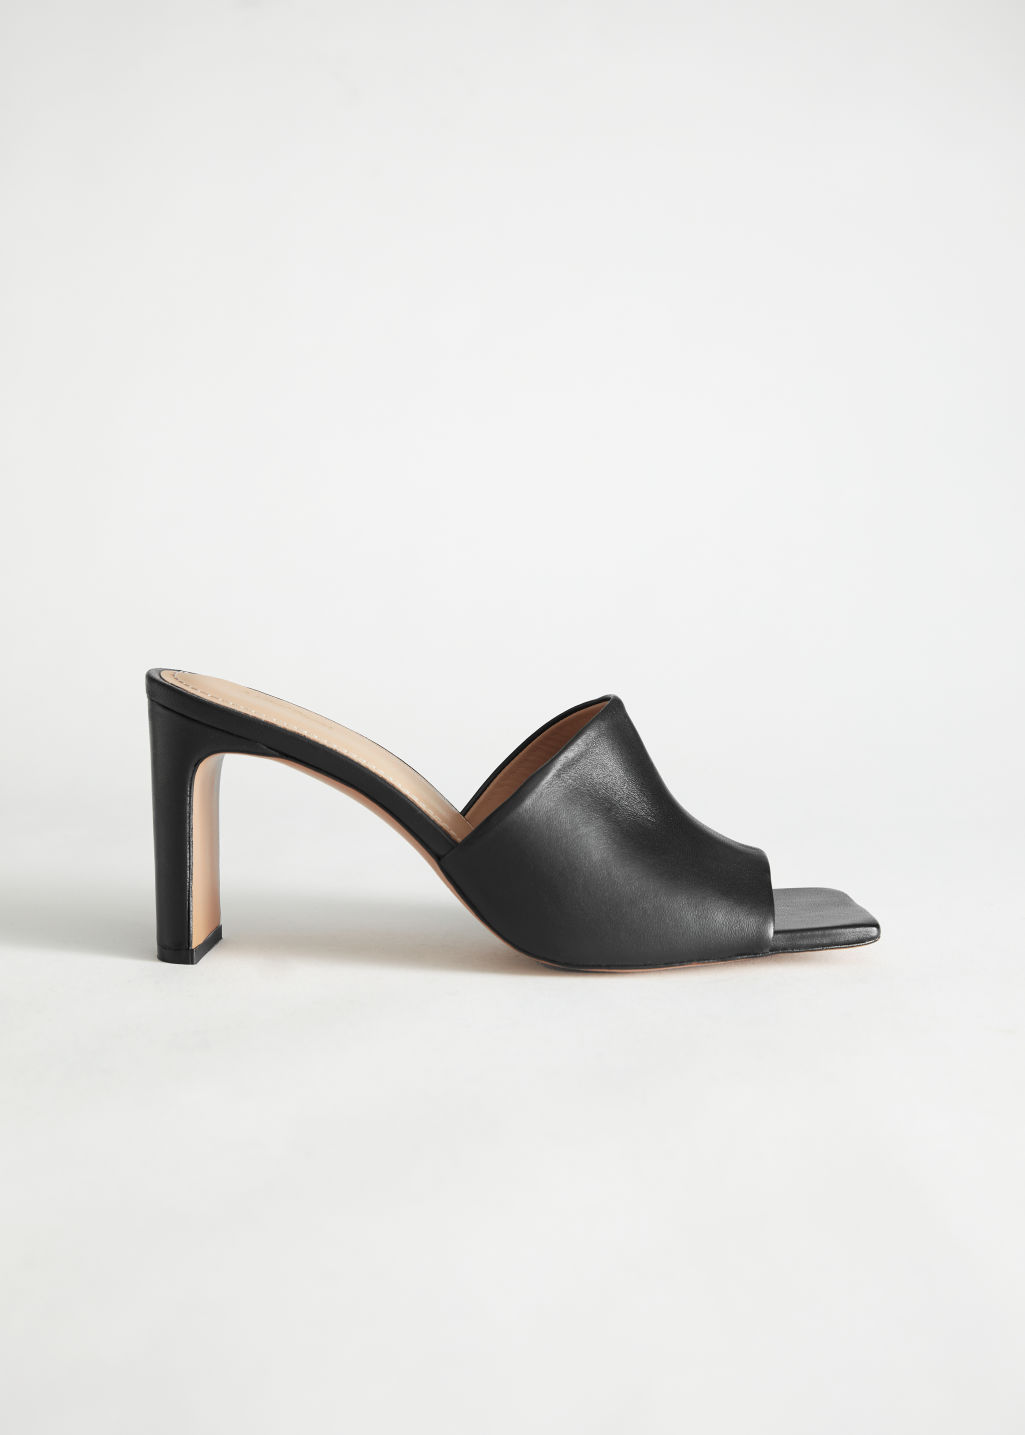 StillLife Left Image of Stories Heeled Leather Square Toe Sandals in Black